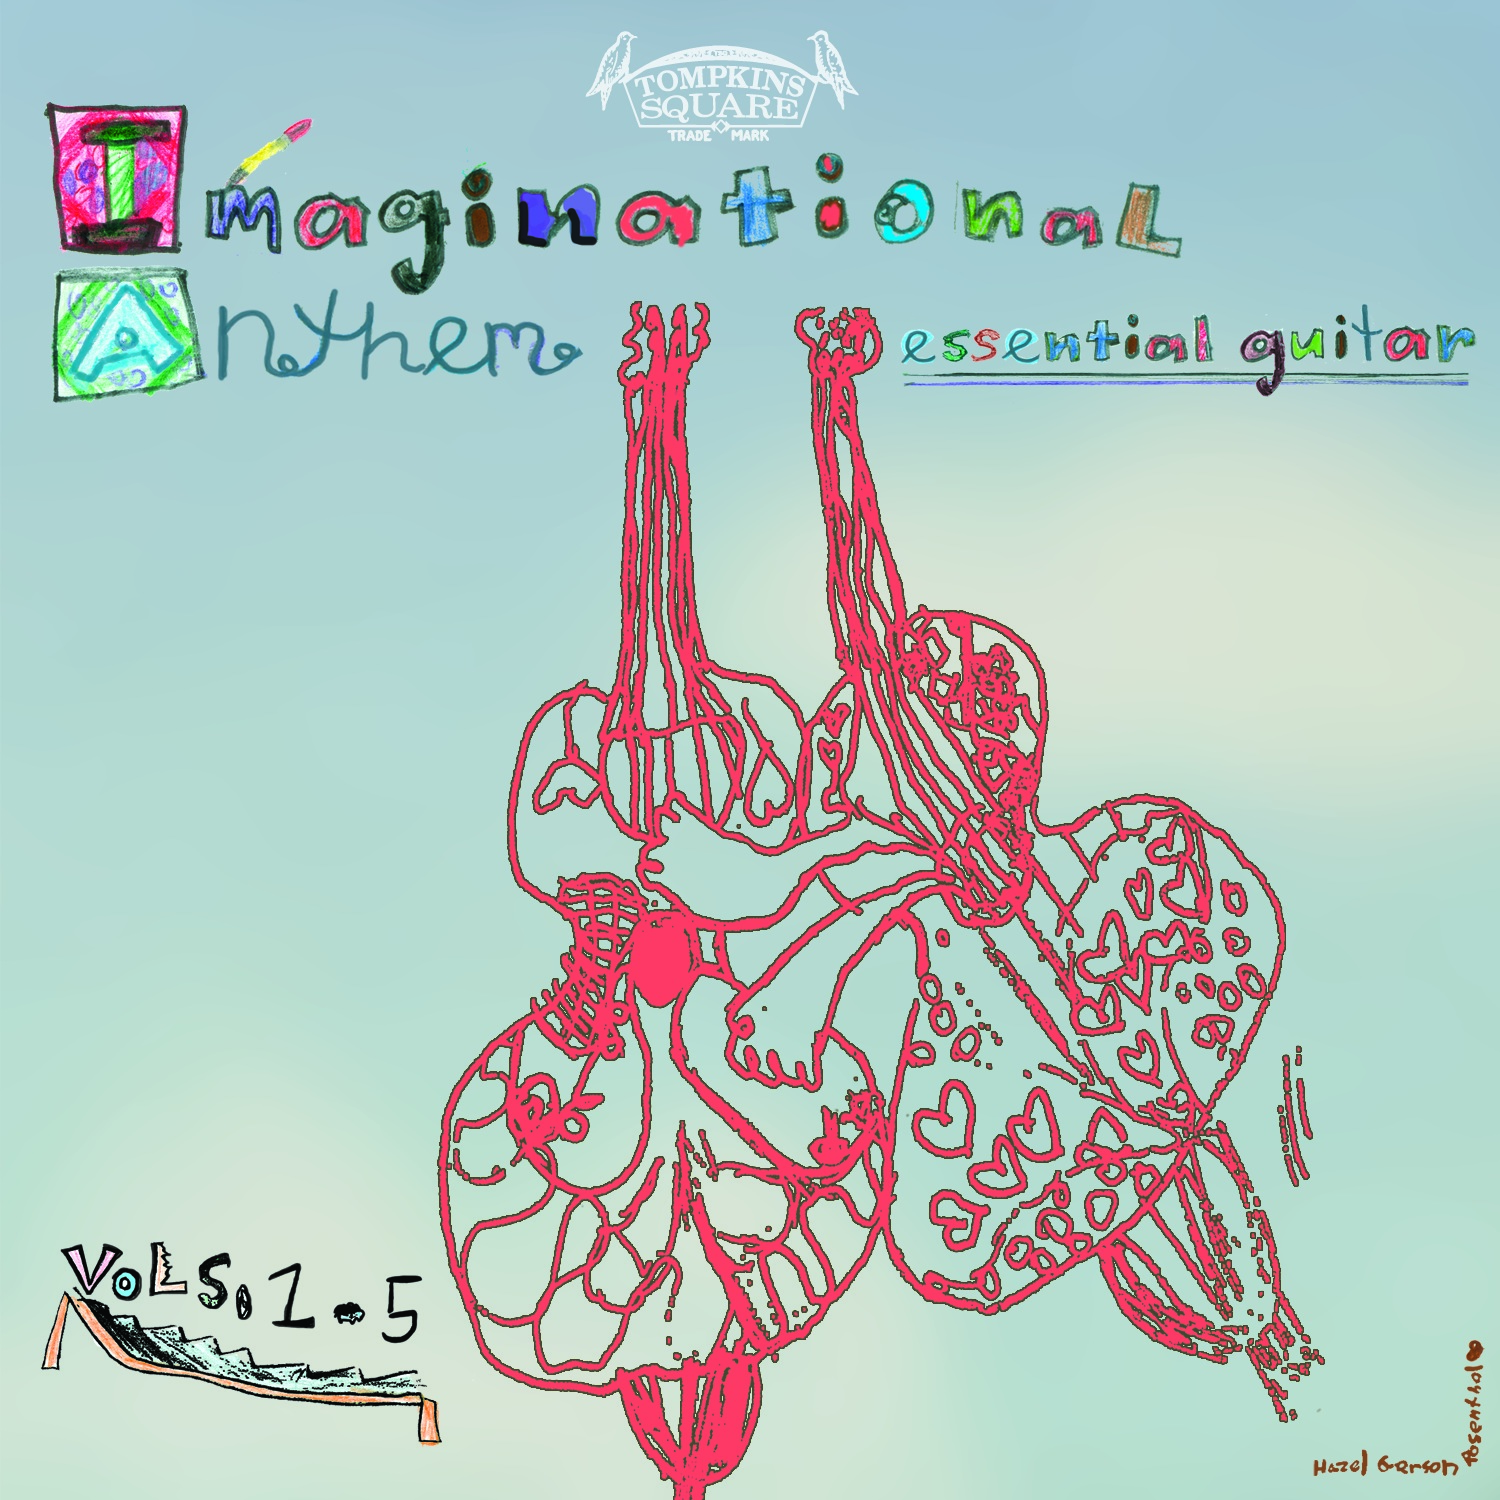 Imaginational Anthem - Imaginational Anthem Vol. 1-5 [Box Set]